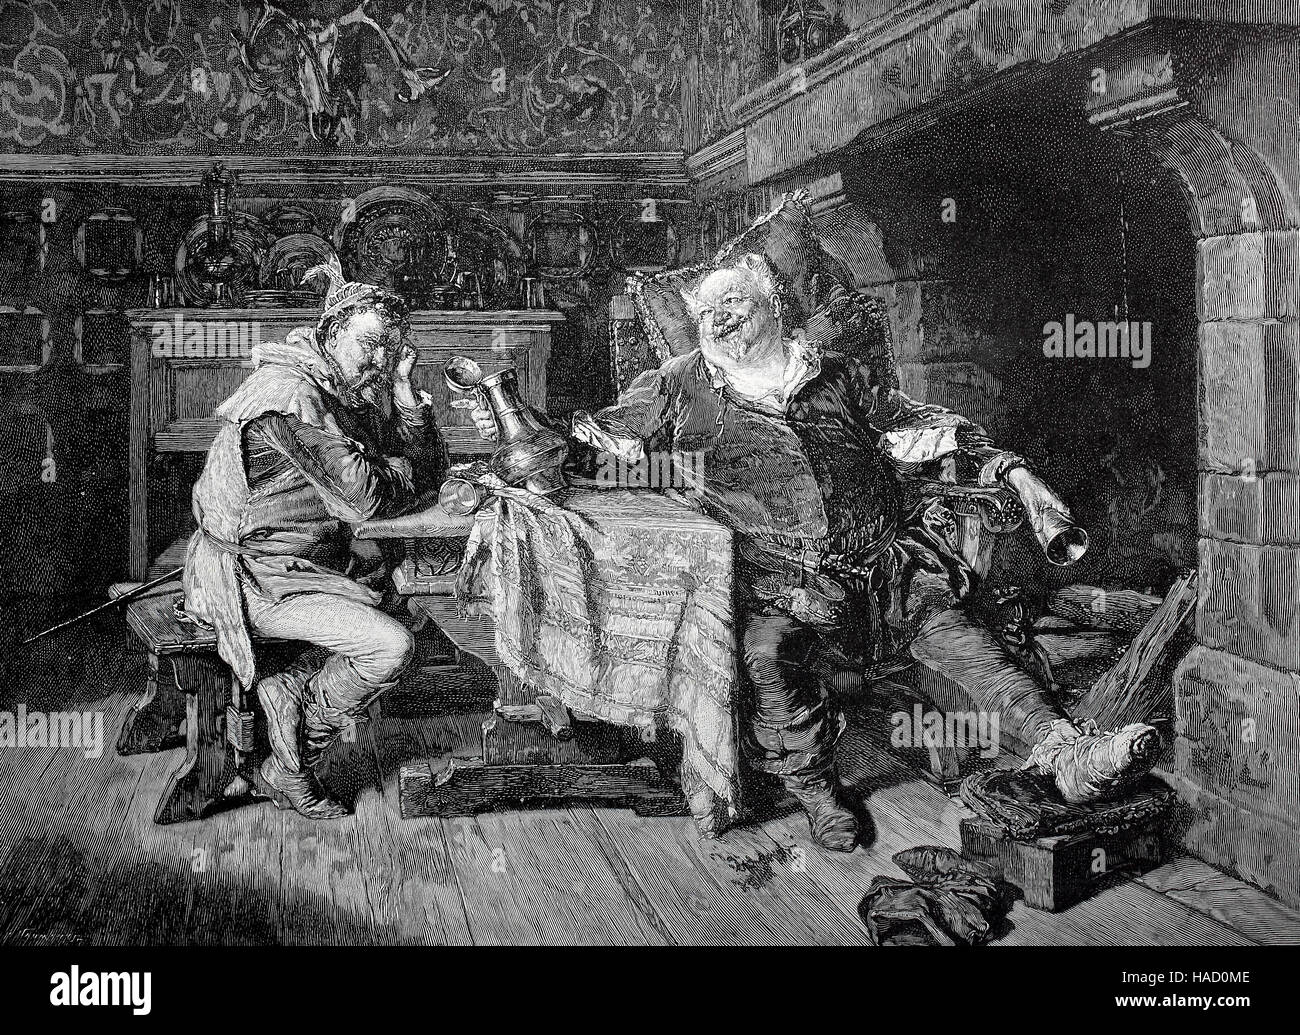 Bardolph and Sir John Falstaff, are fictional characters who appears in three plays by William Shakespeare, illustration - Stock Image